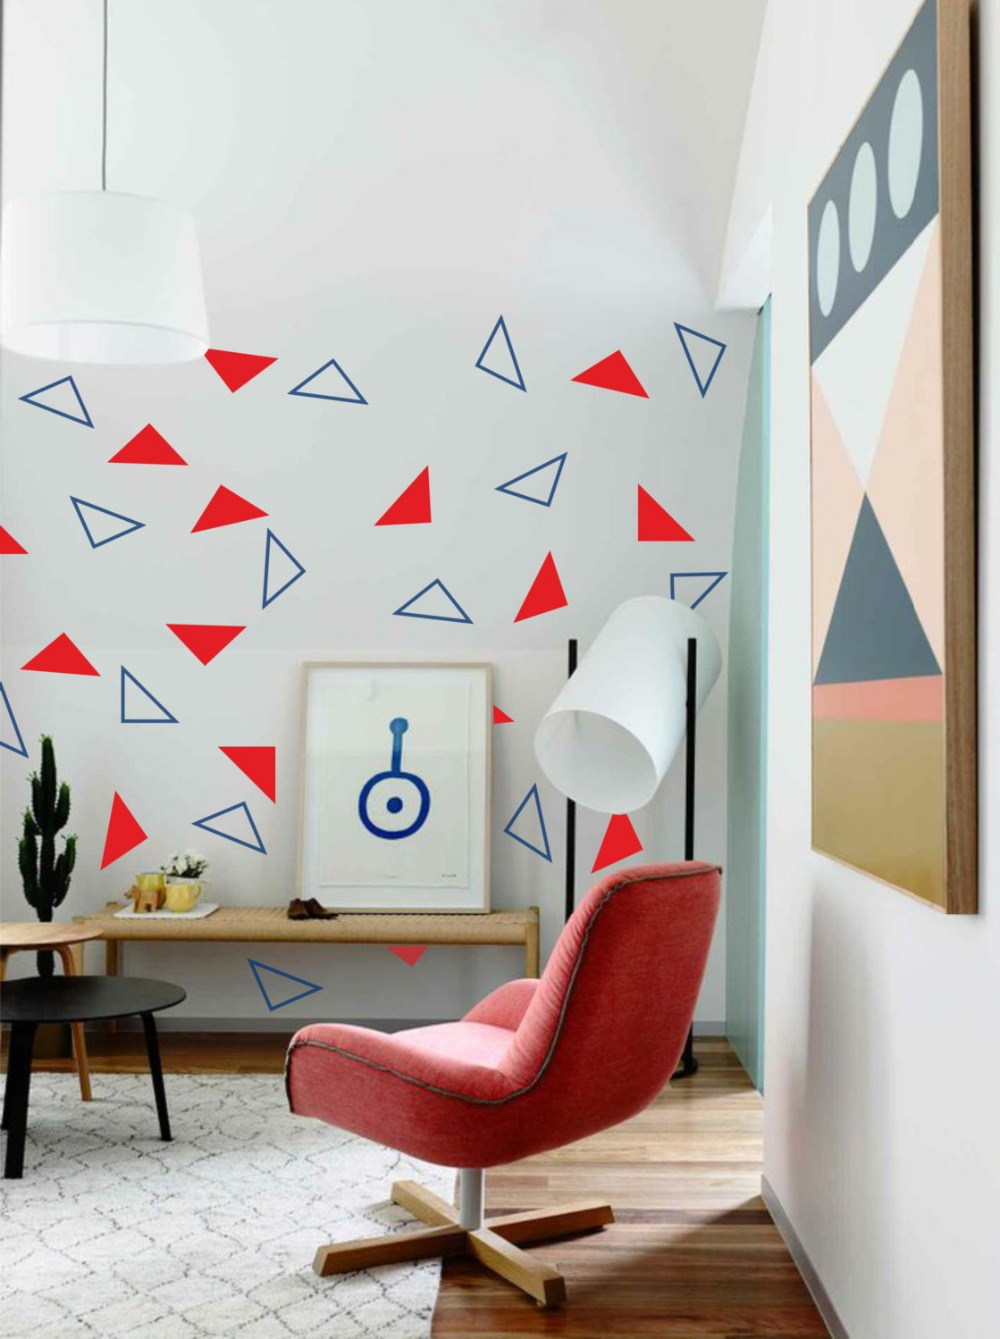 Geometric wallpaper design